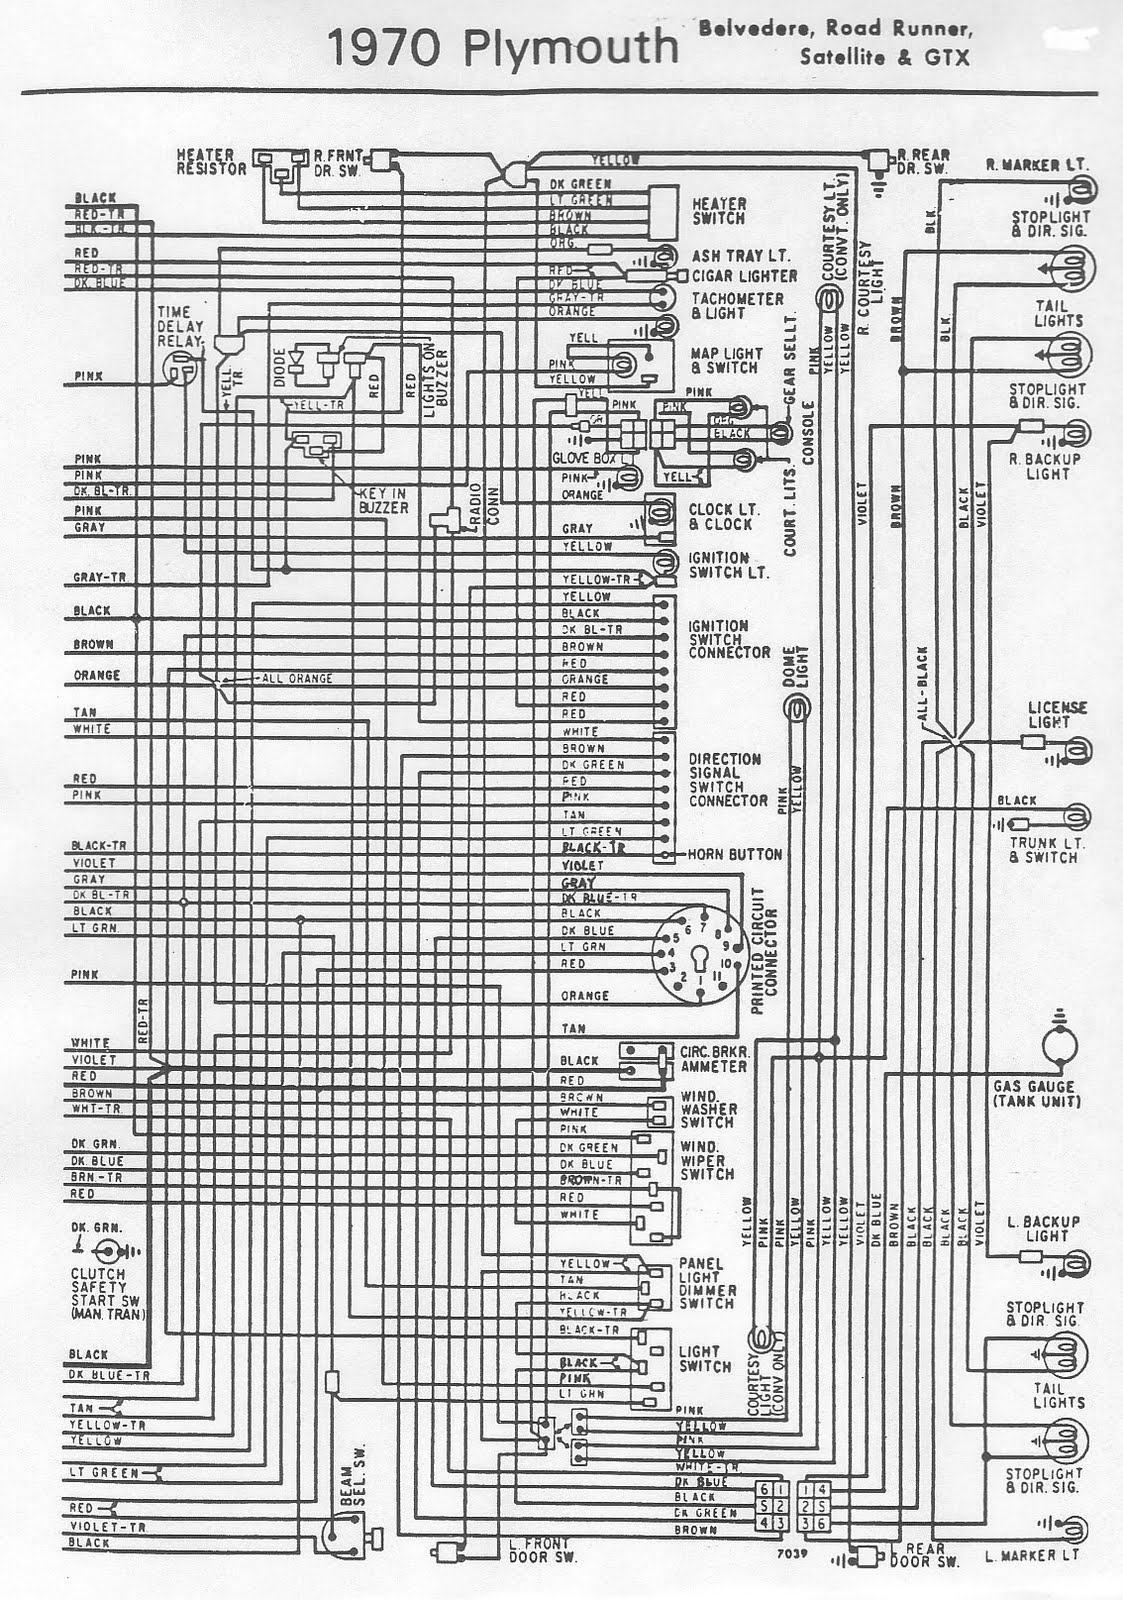 72 Plymouth Wiring Diagram Data For Chevy Nova 1972 Duster Road Runner